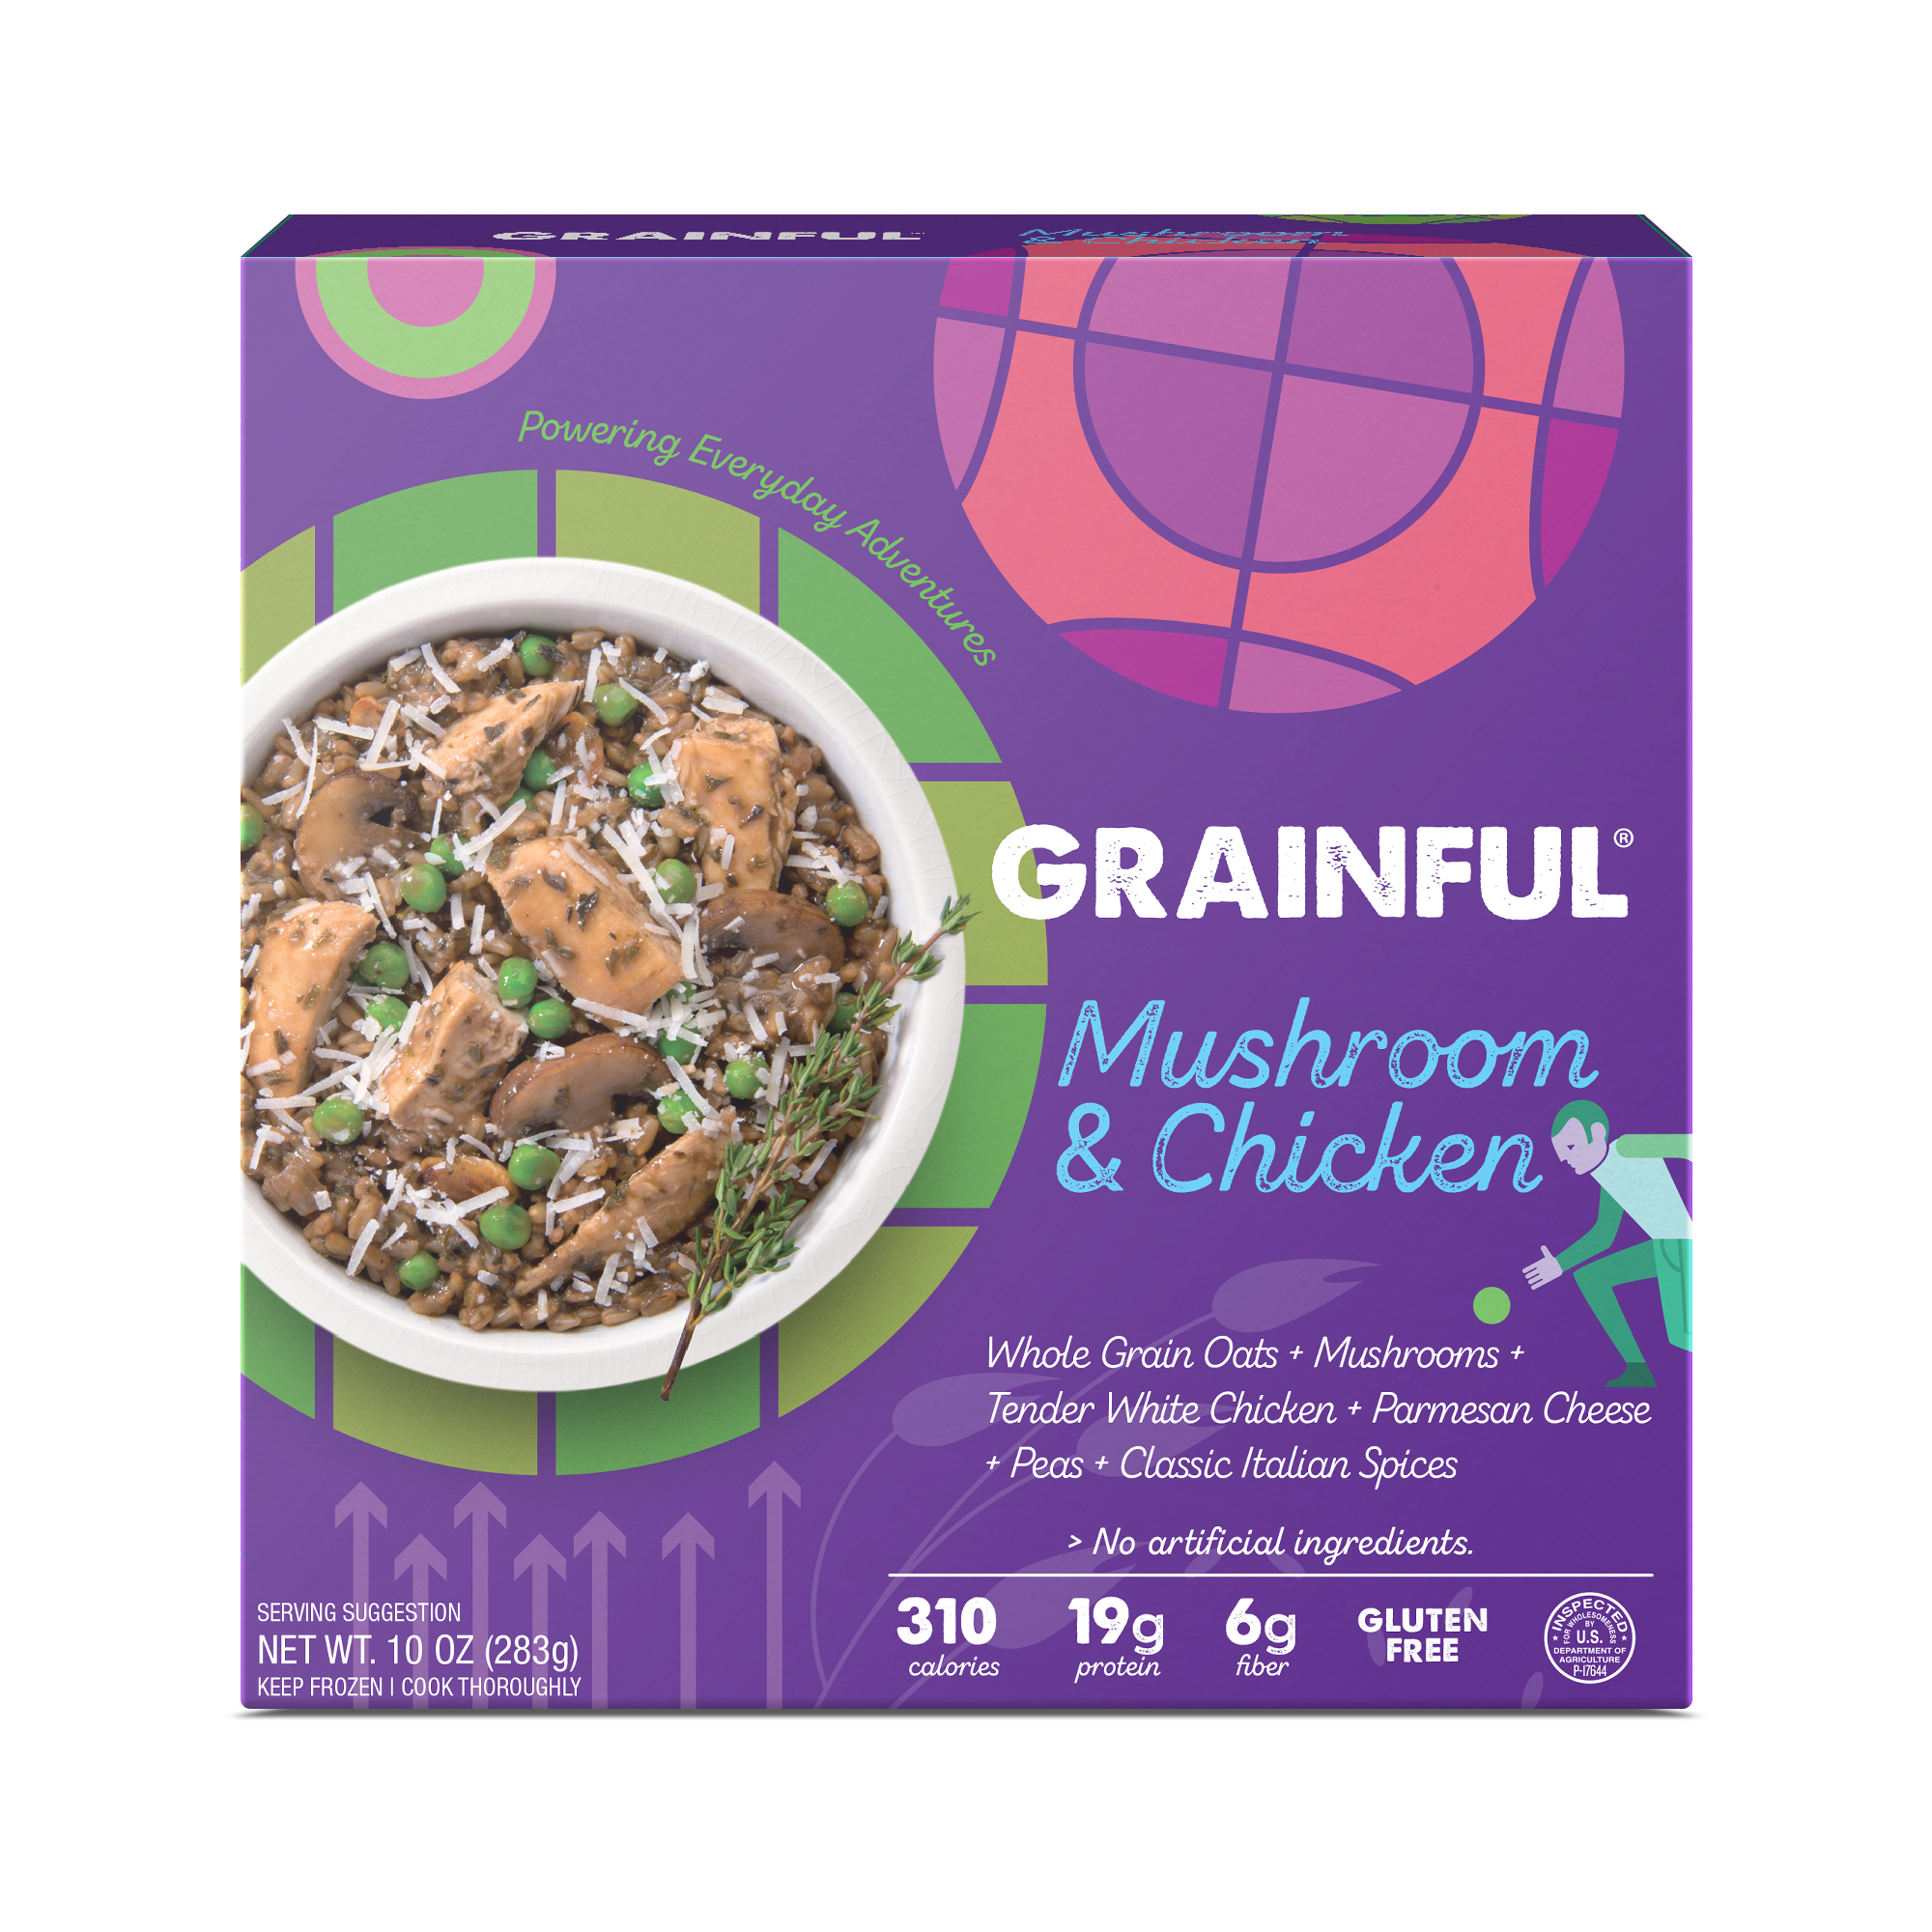 Grainful Amazon 3D Mockup_v1_Mushroom Chicken.png